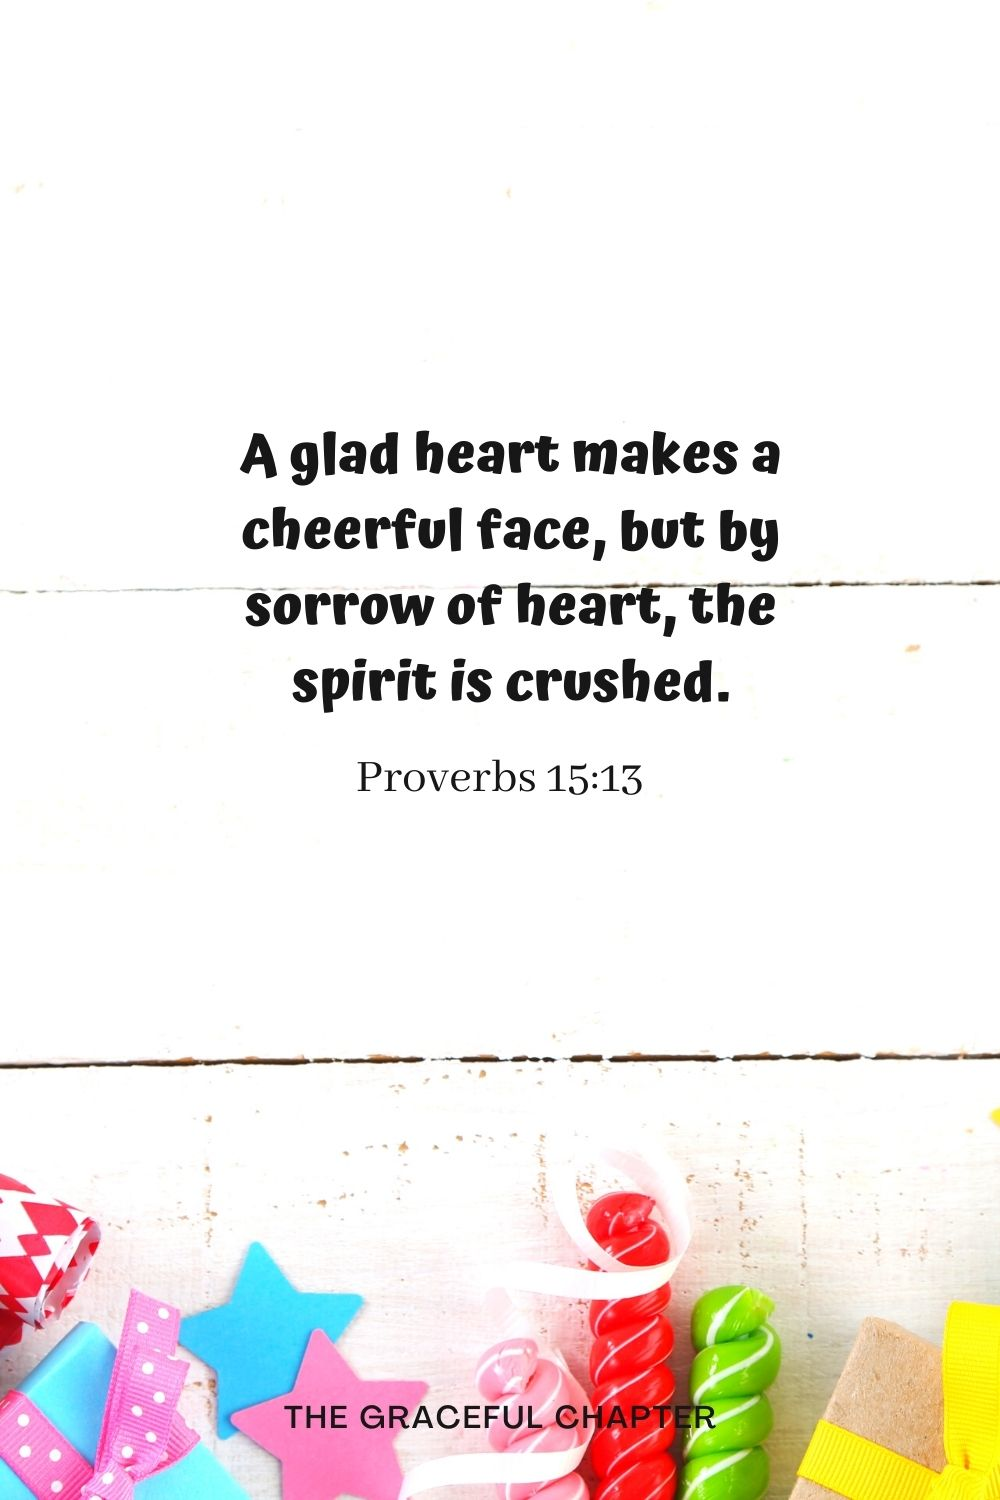 A glad heart makes a cheerful face, but by sorrow of heart, the spirit is crushed. Proverbs 15:13